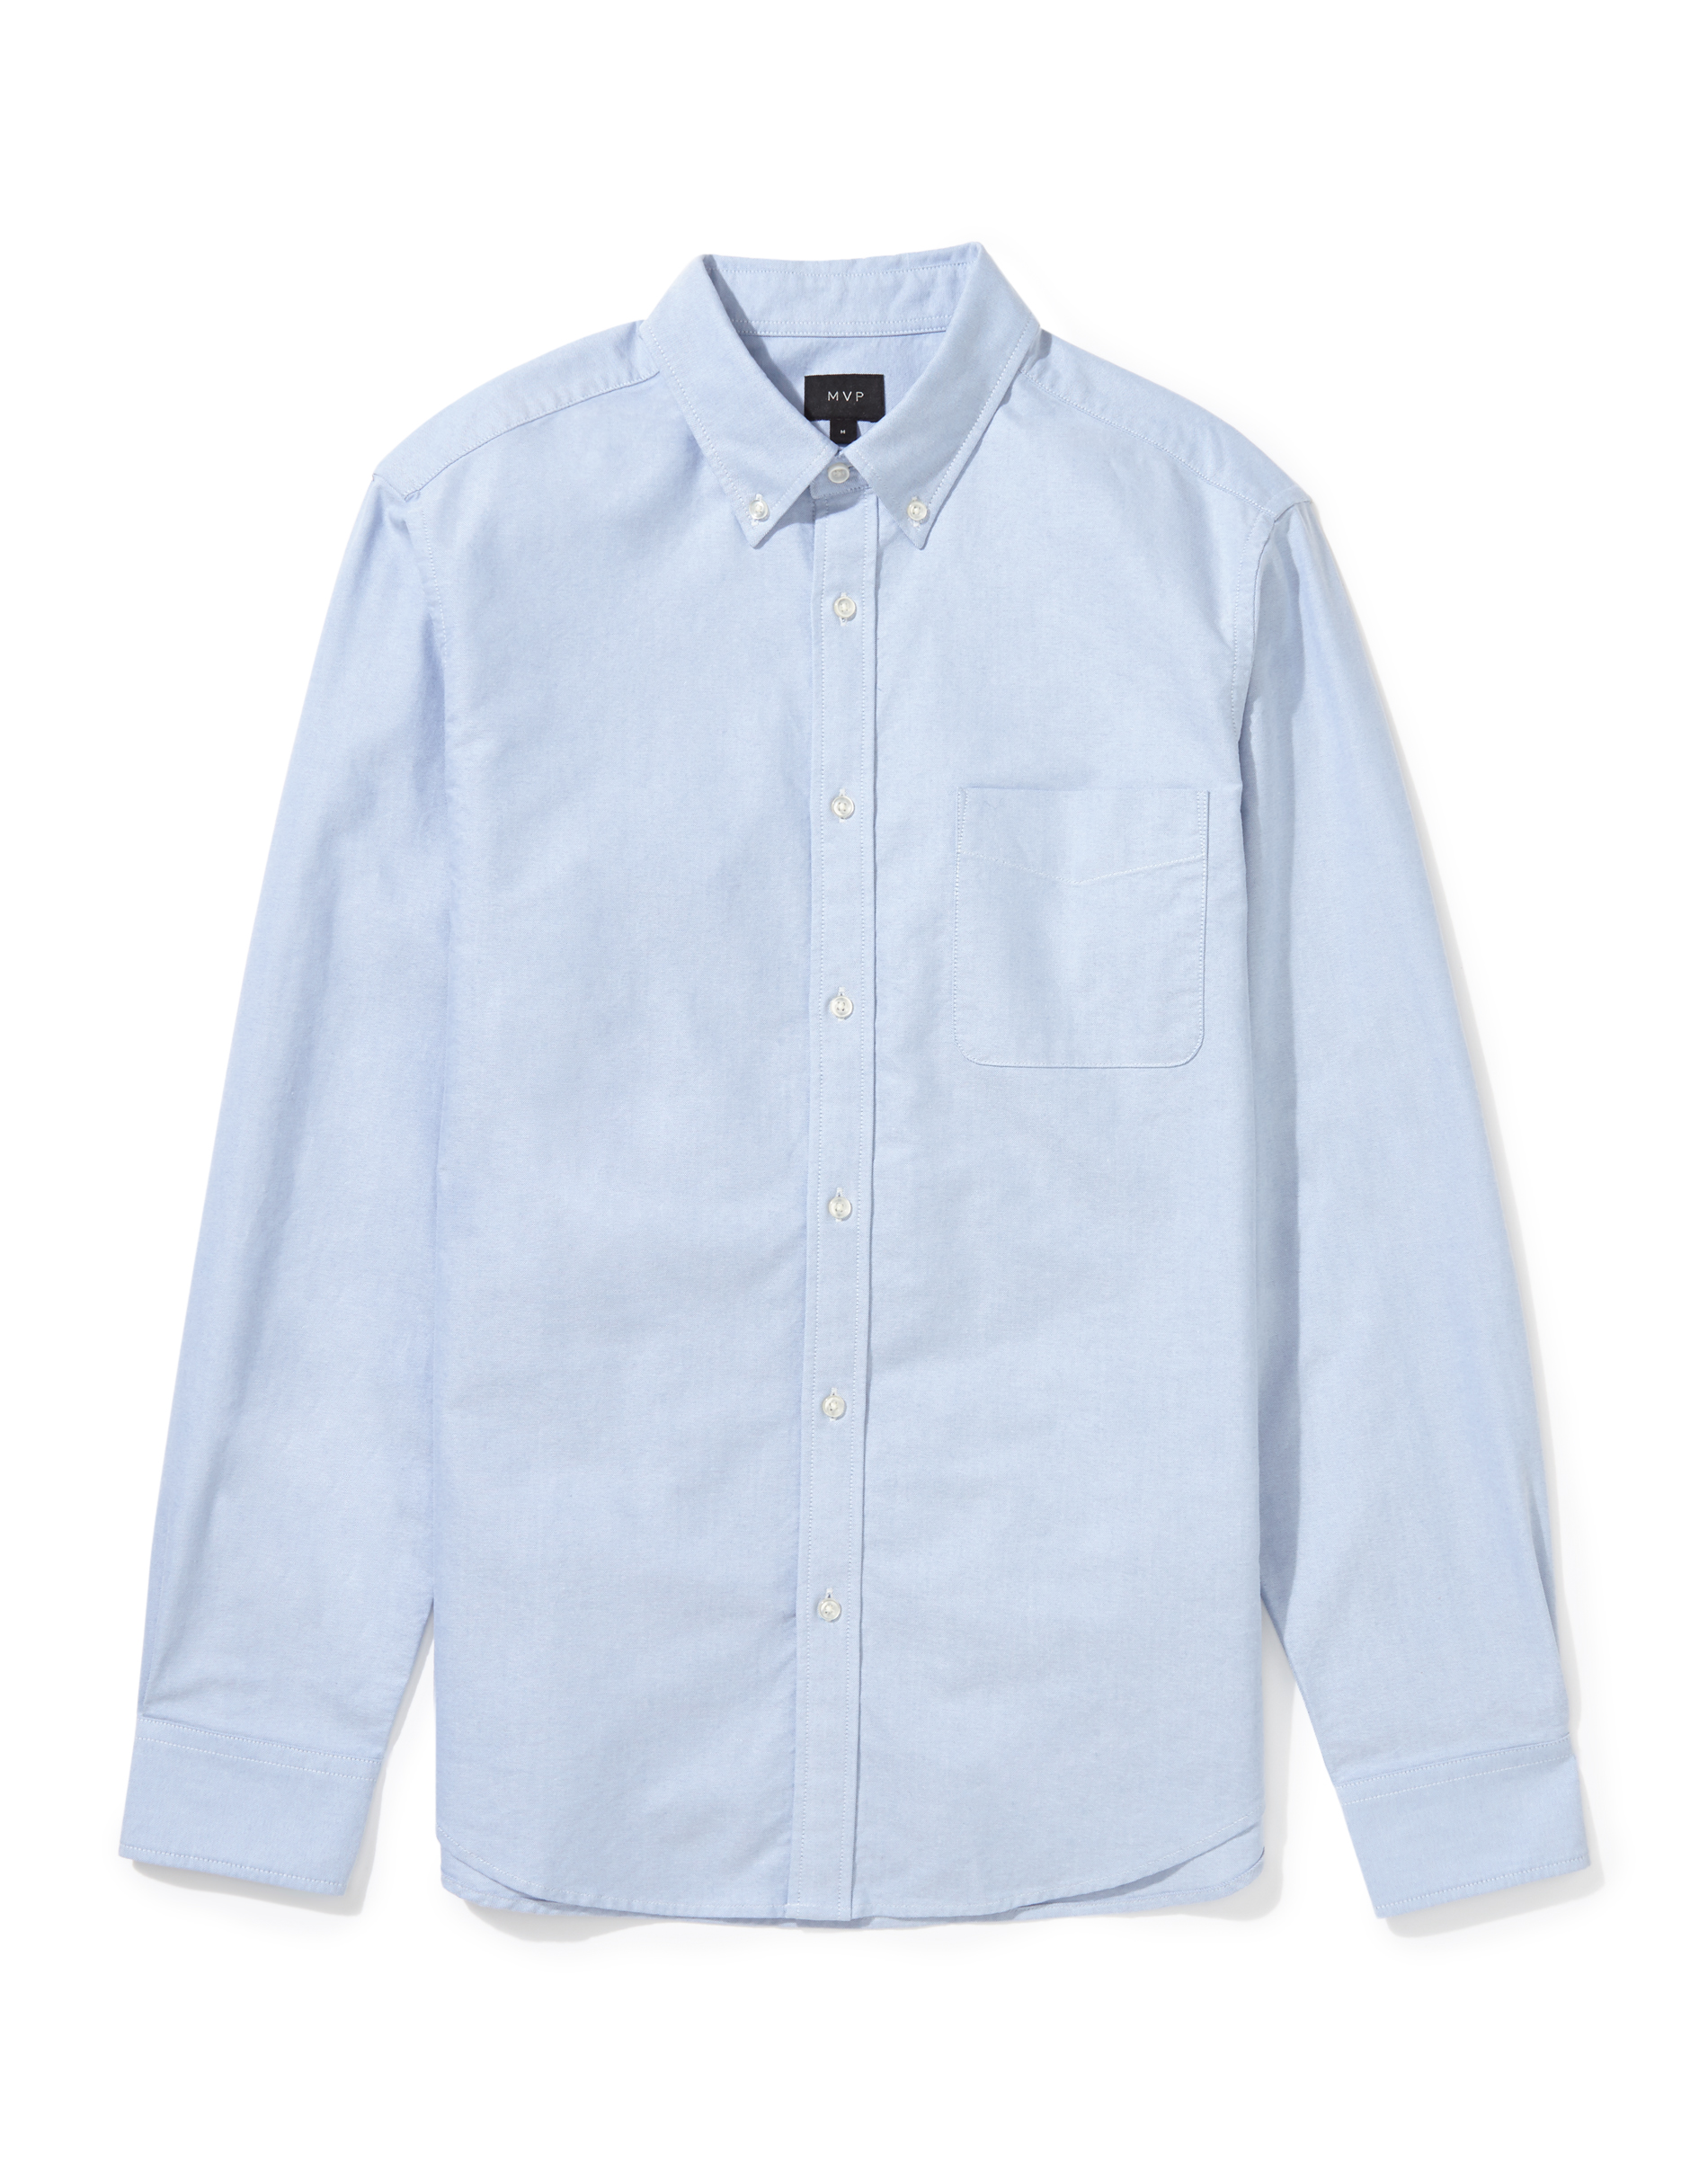 MVP Cornflower Blue Chapman Oxford Shirt - Blue